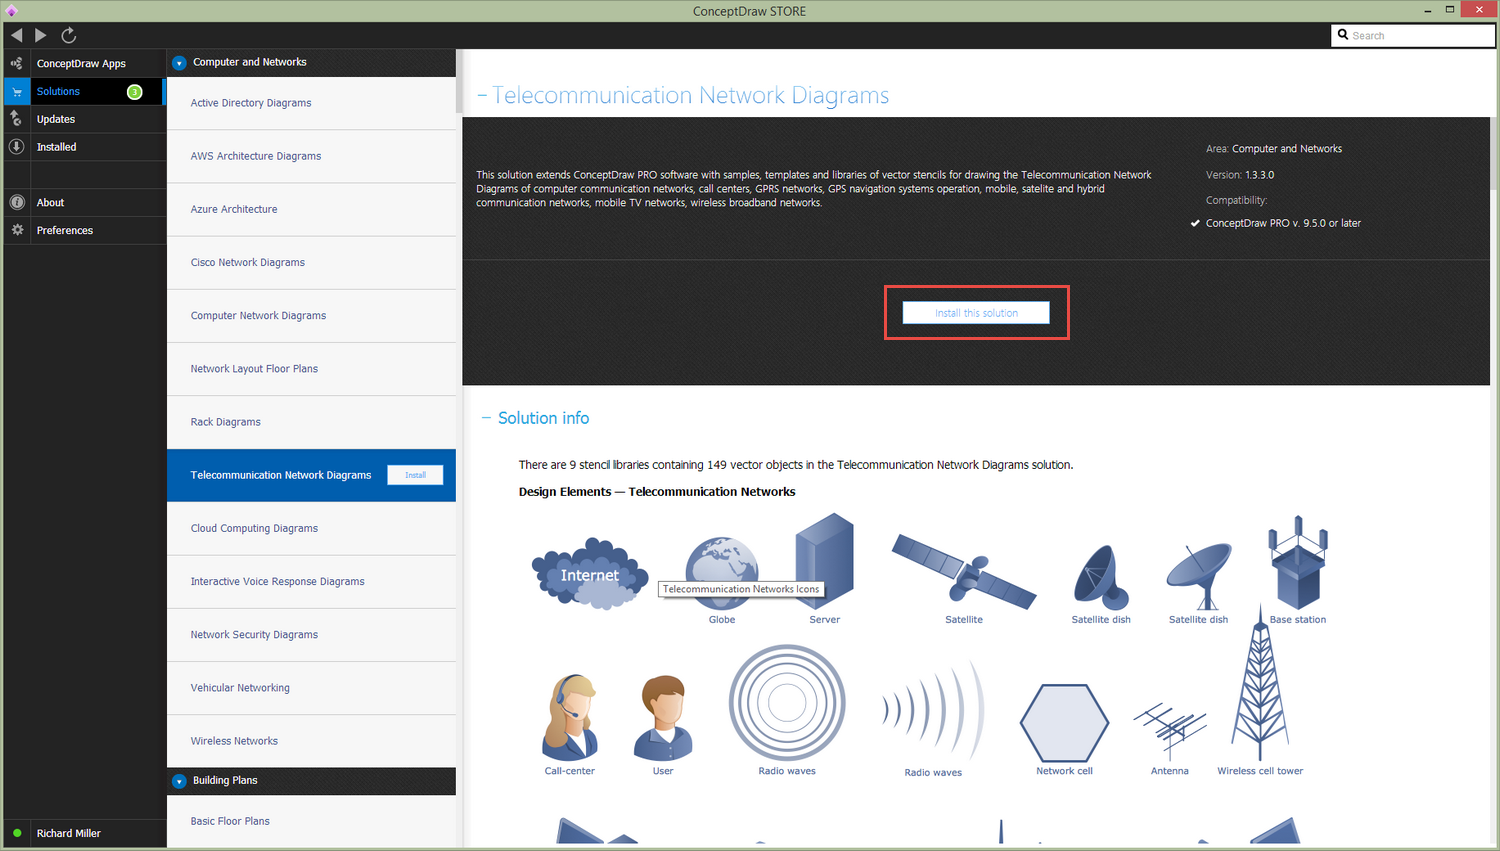 Telecommunication Network Diagrams Solution | ConceptDraw com